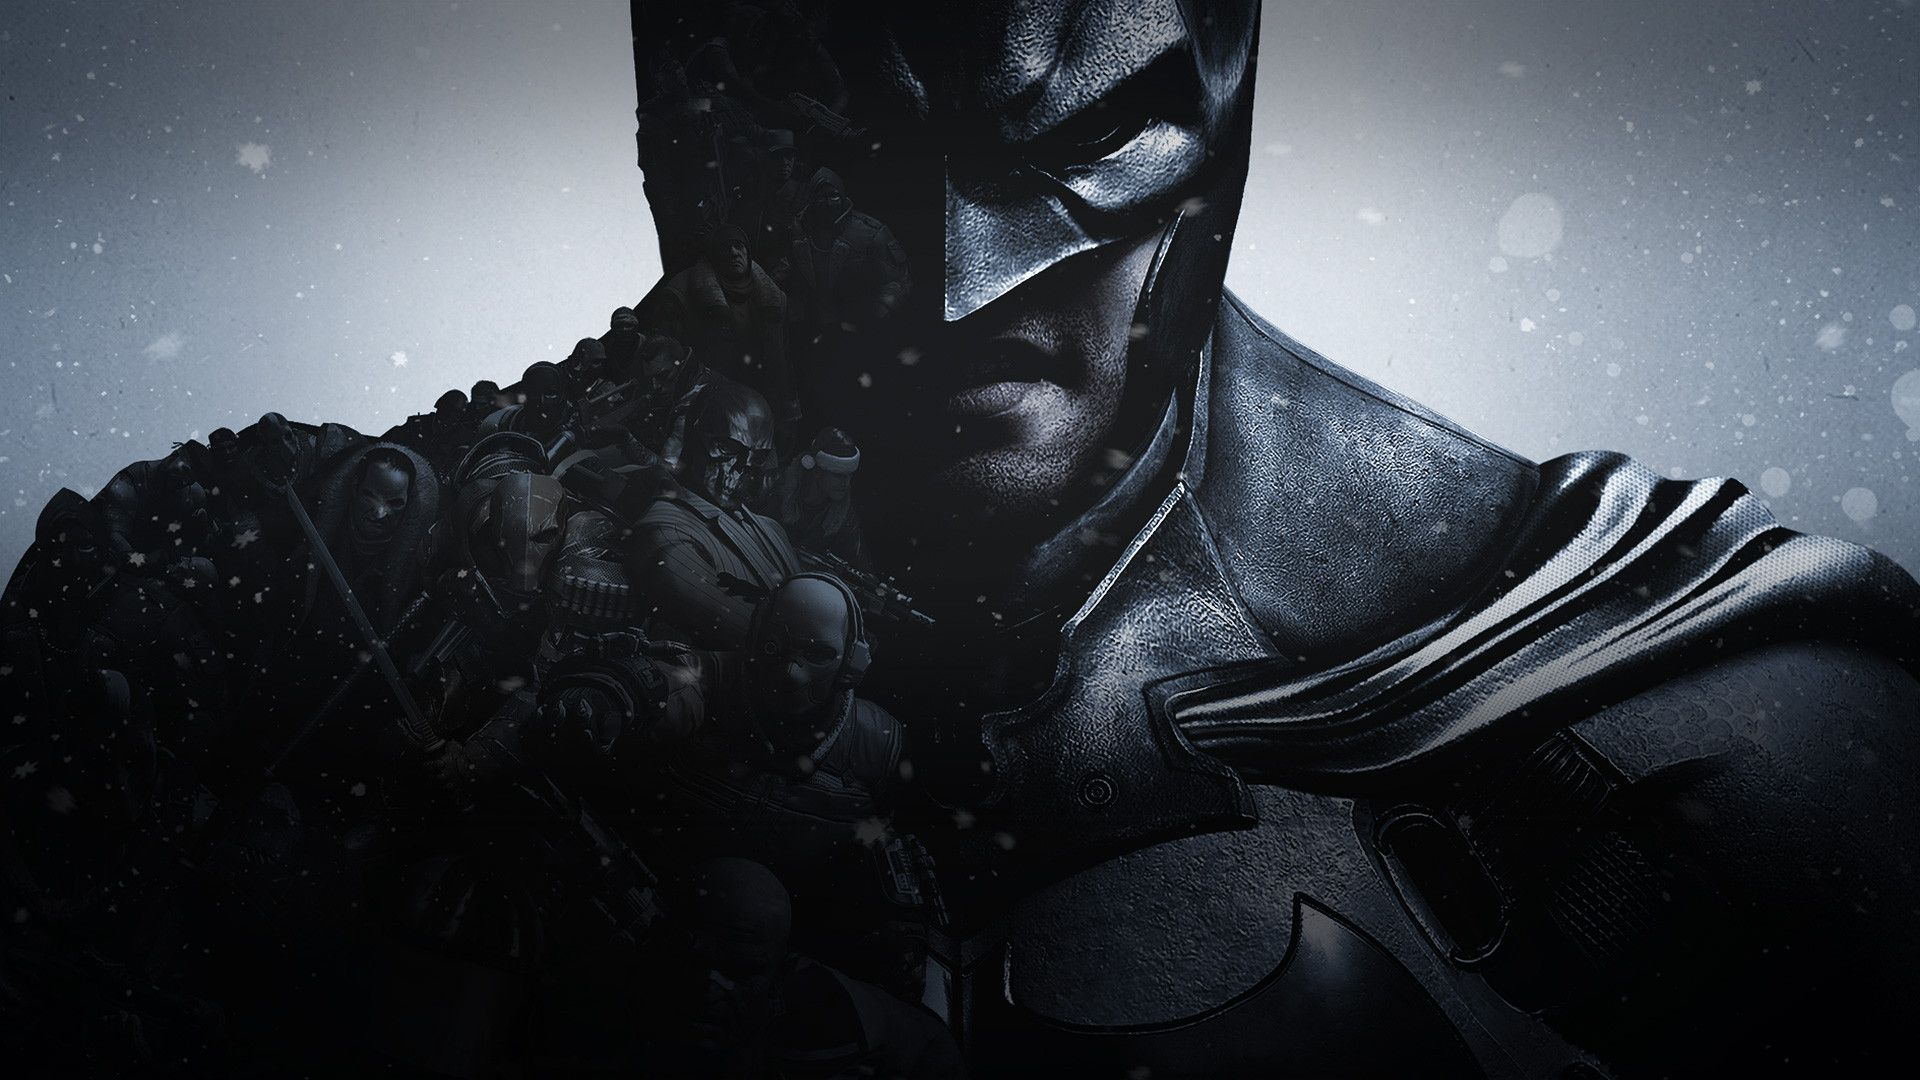 movie wallpaper batman vs superman desktop wallpaper wallpaper hd